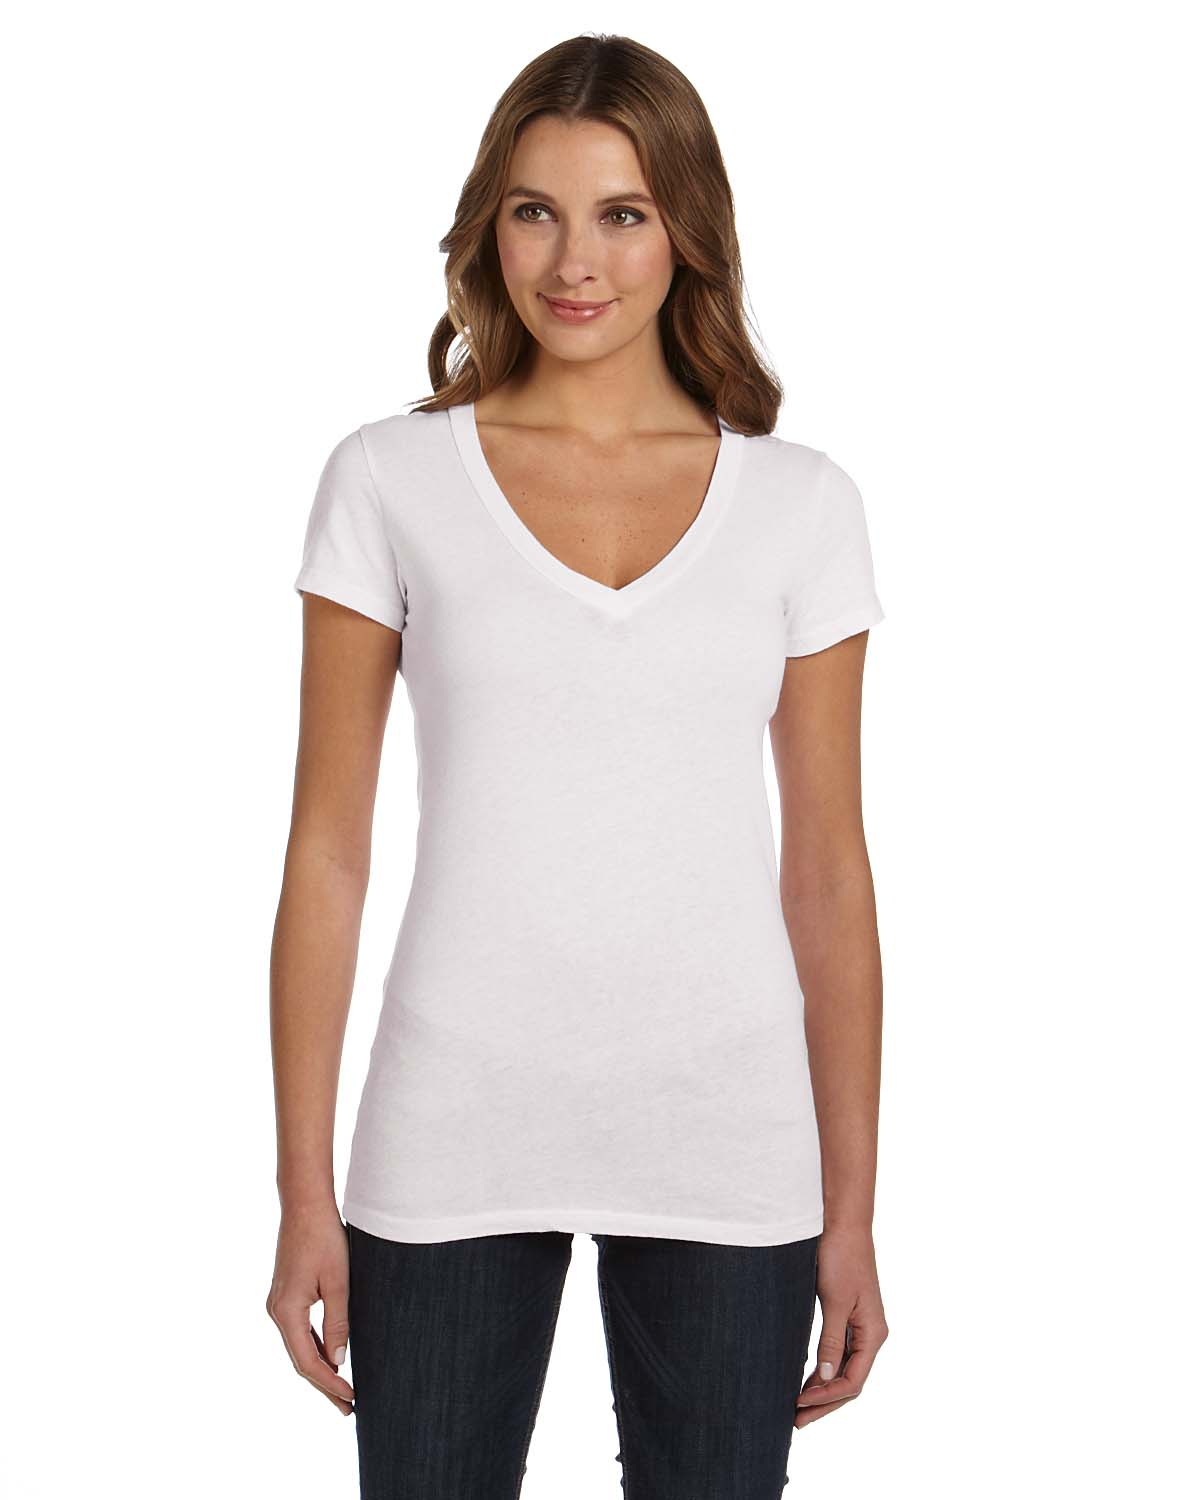 bella canvas b8417 women 39 s deep v neck t shirt shirtmax